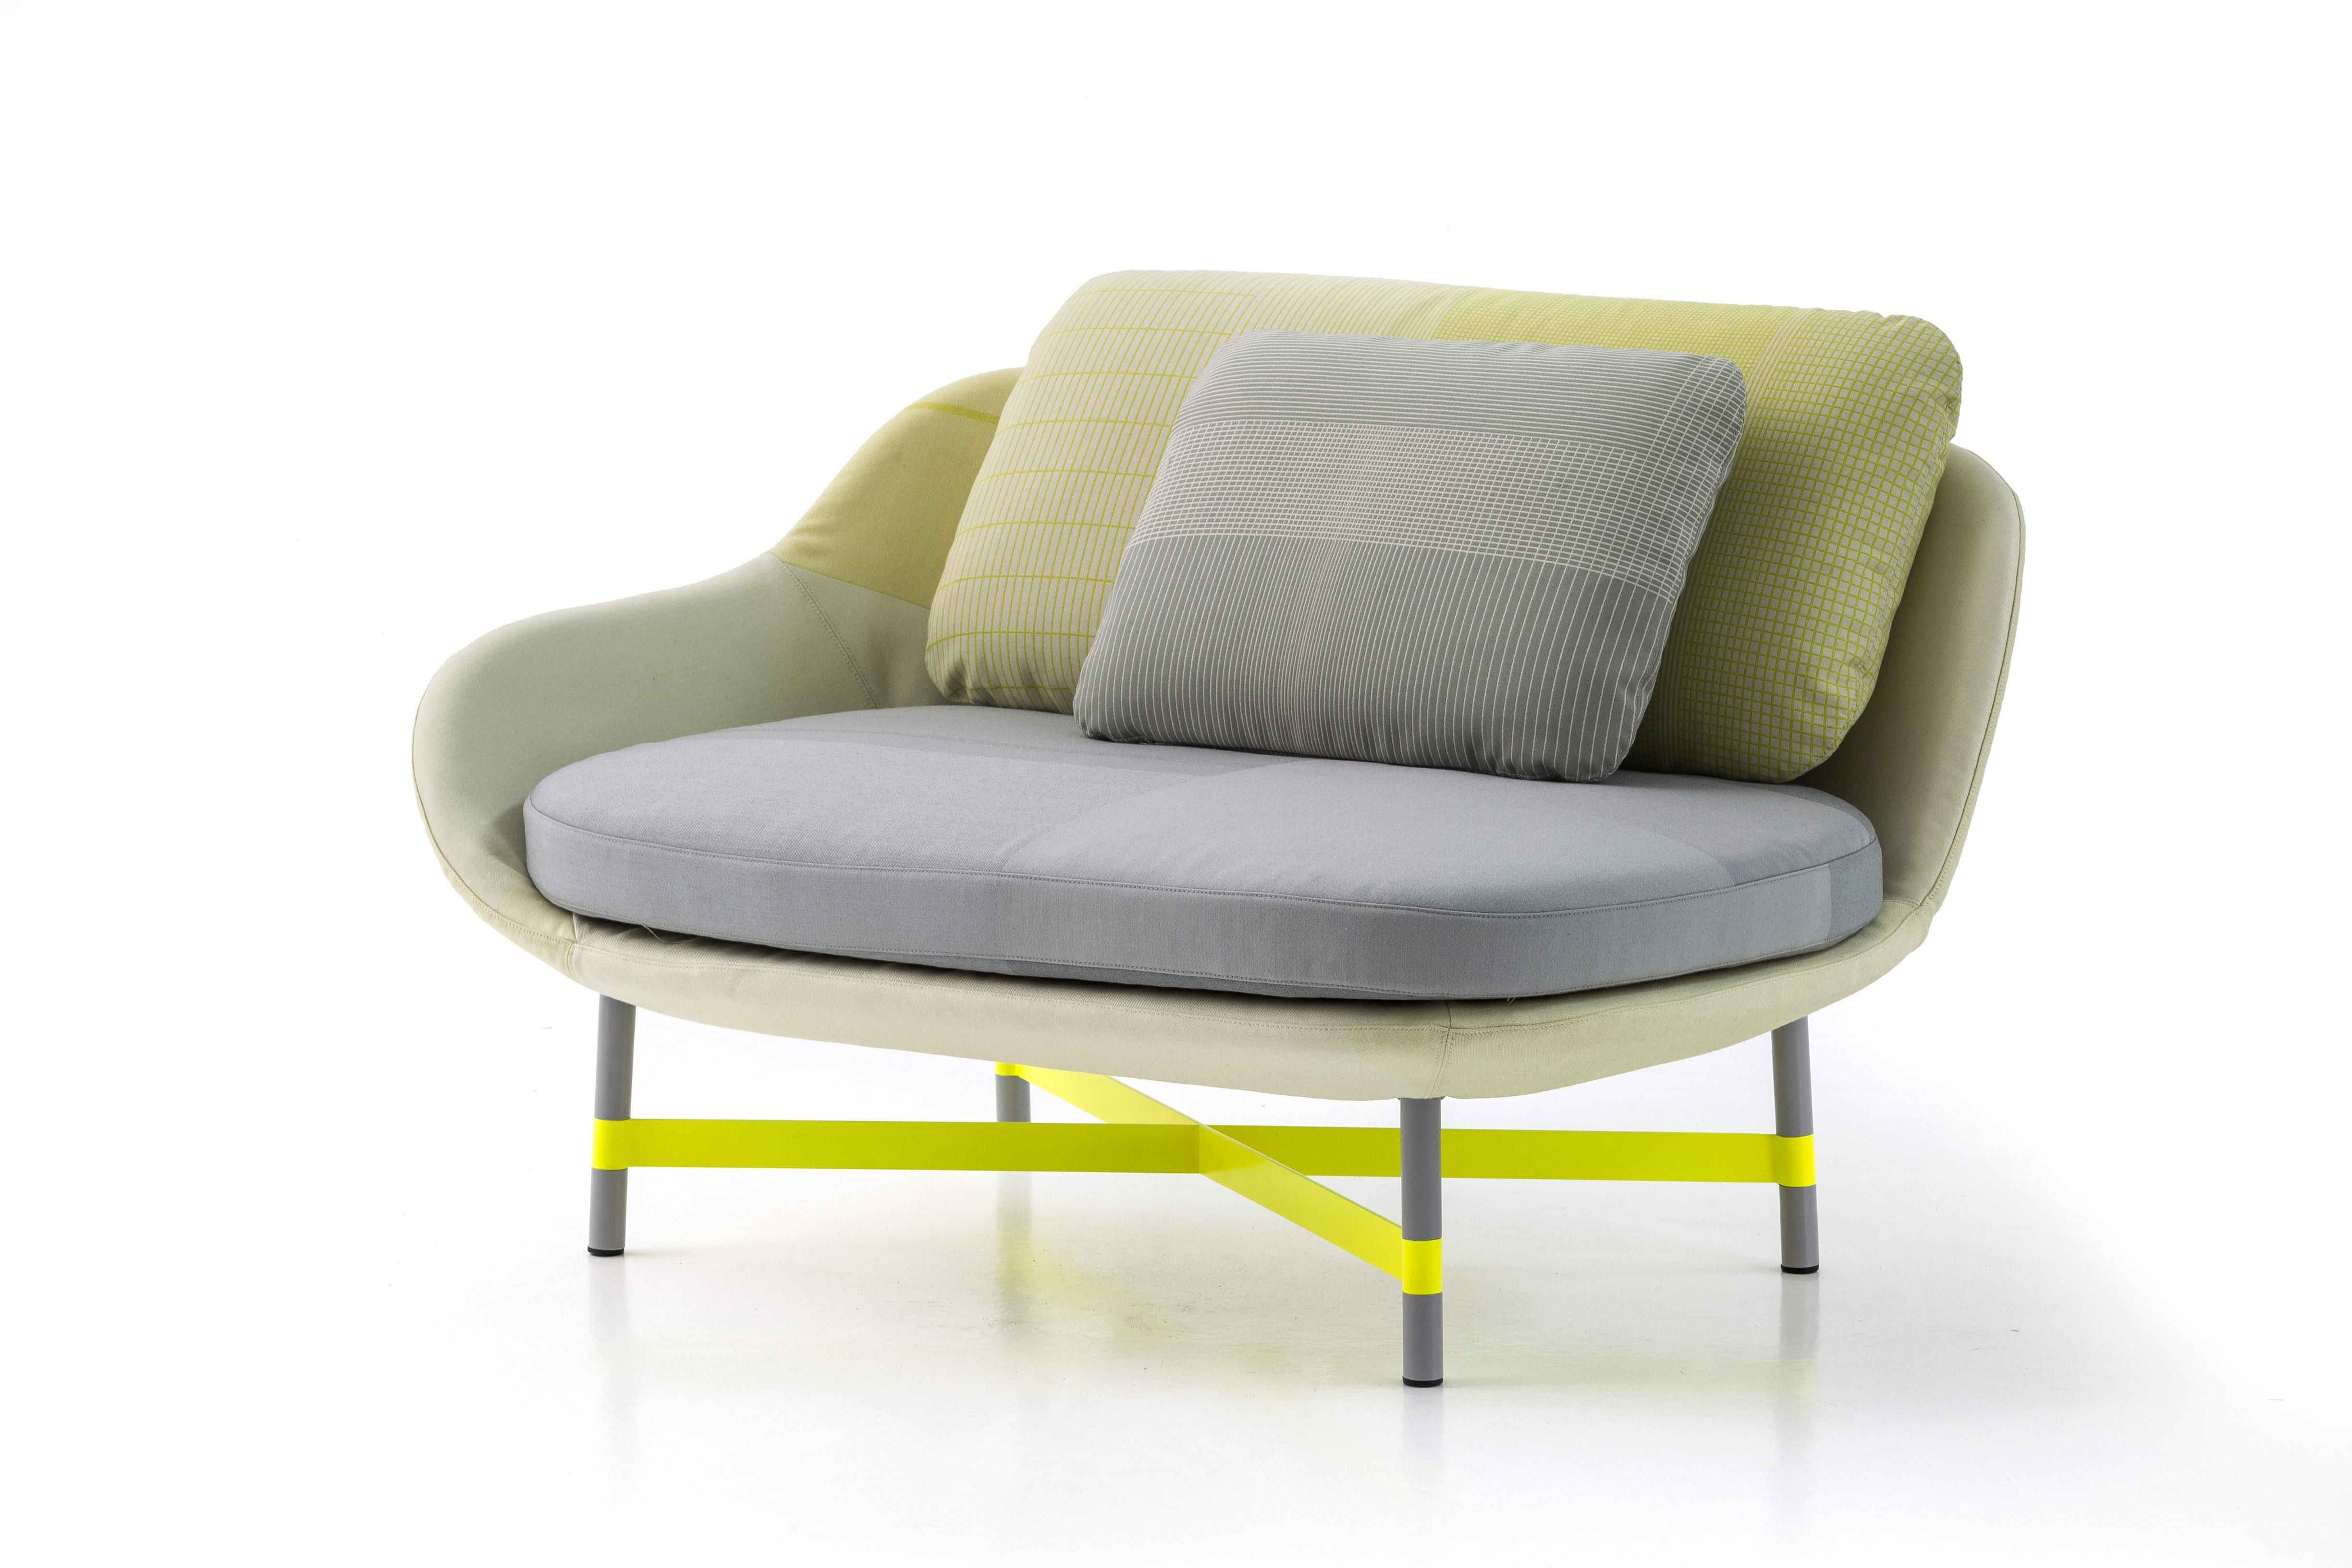 Divan ottoman gaelmagazine sofa pinterest ottomans and armchairs